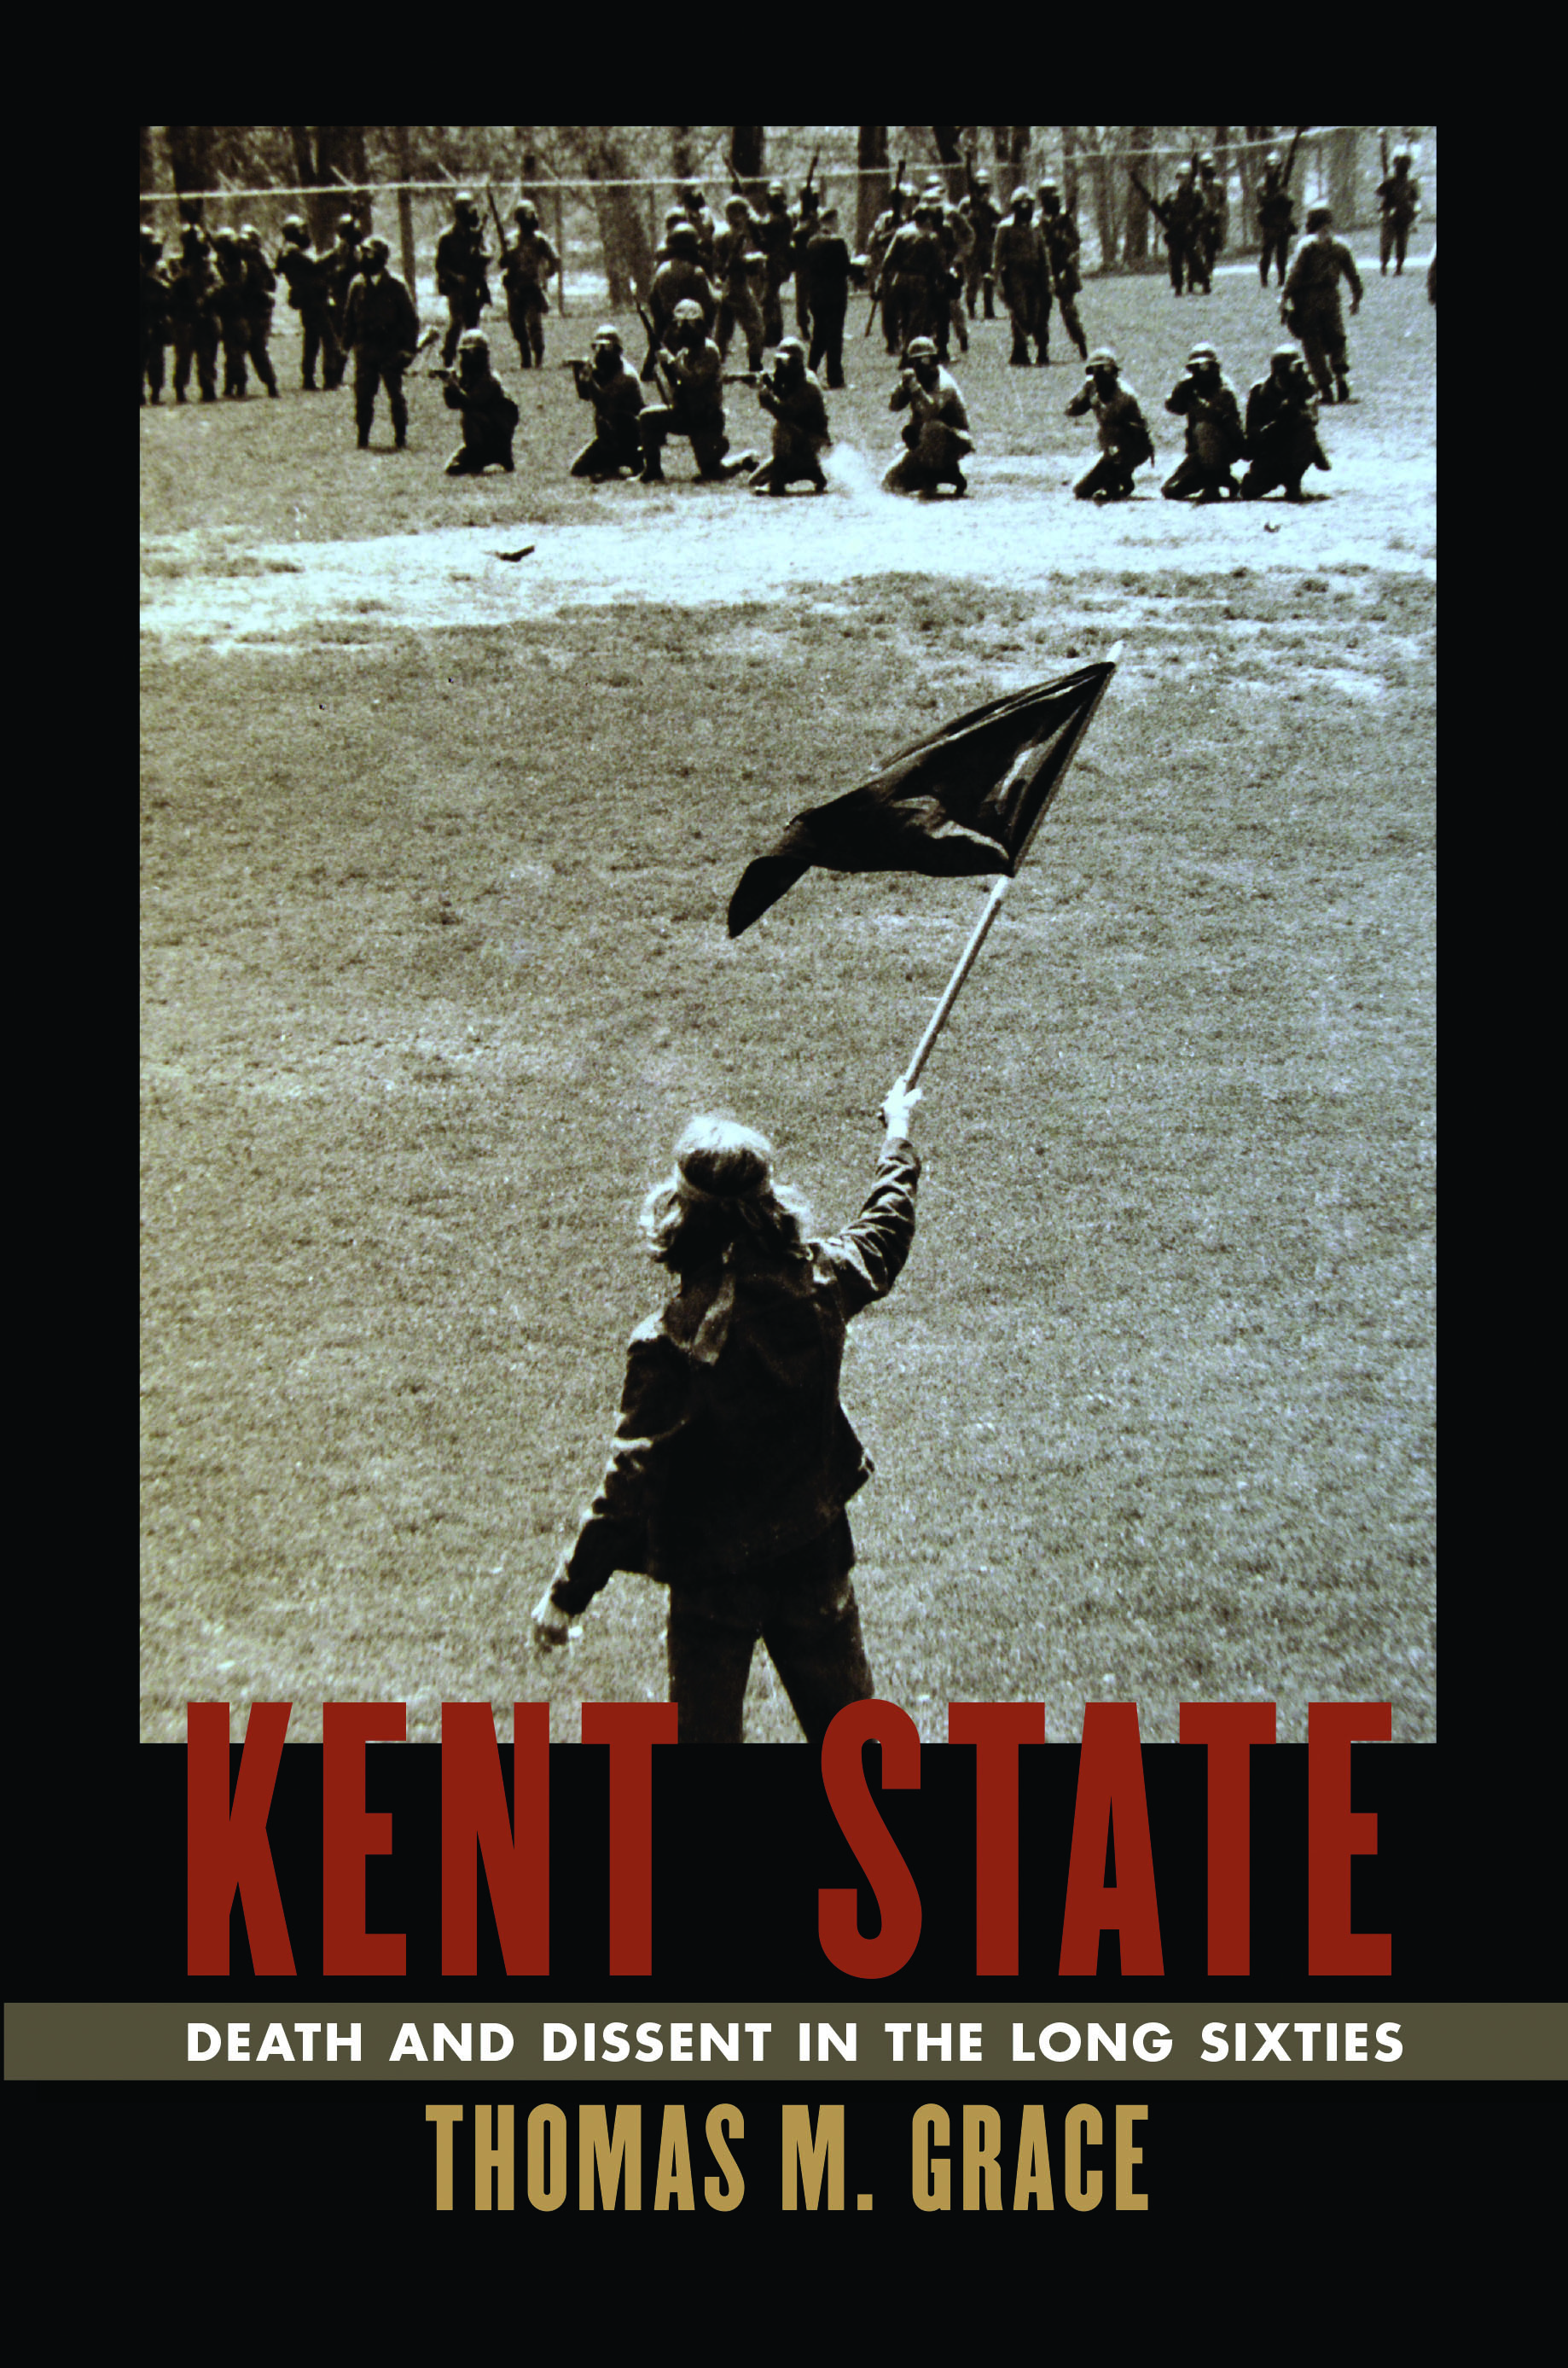 Kent State: Death and Dissent in the Sixties